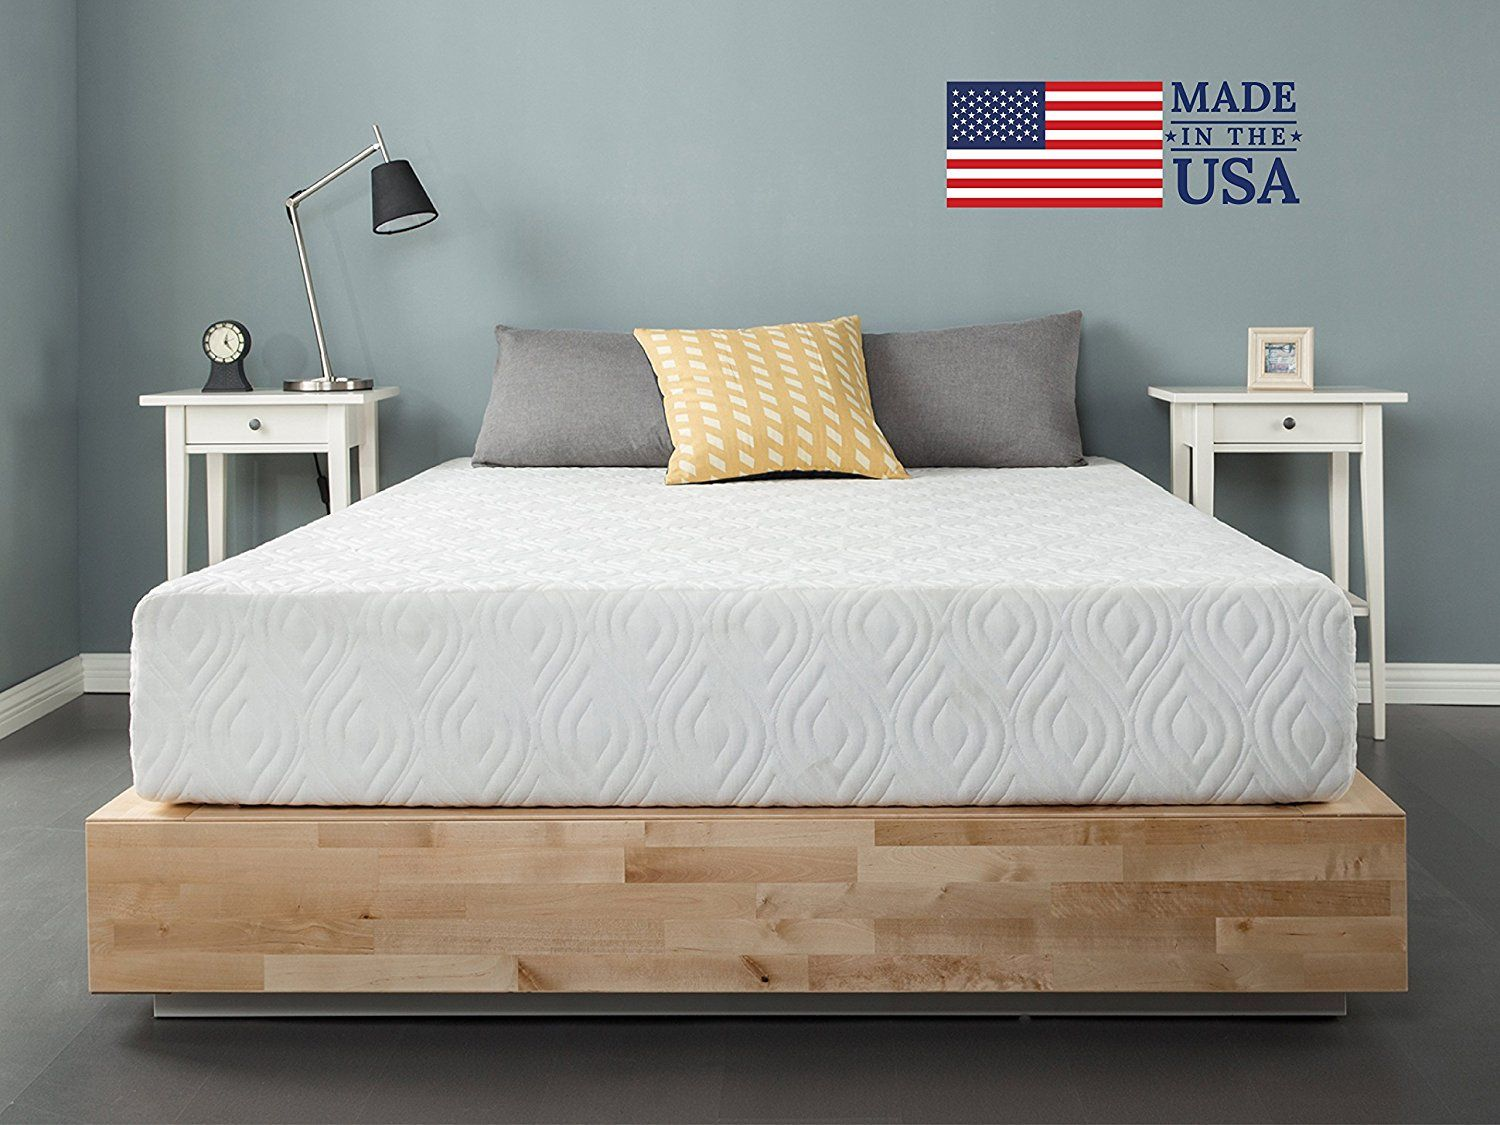 Amazon Com Zinus 10 Inch Gel Memory Foam Liberty Mattress Made In